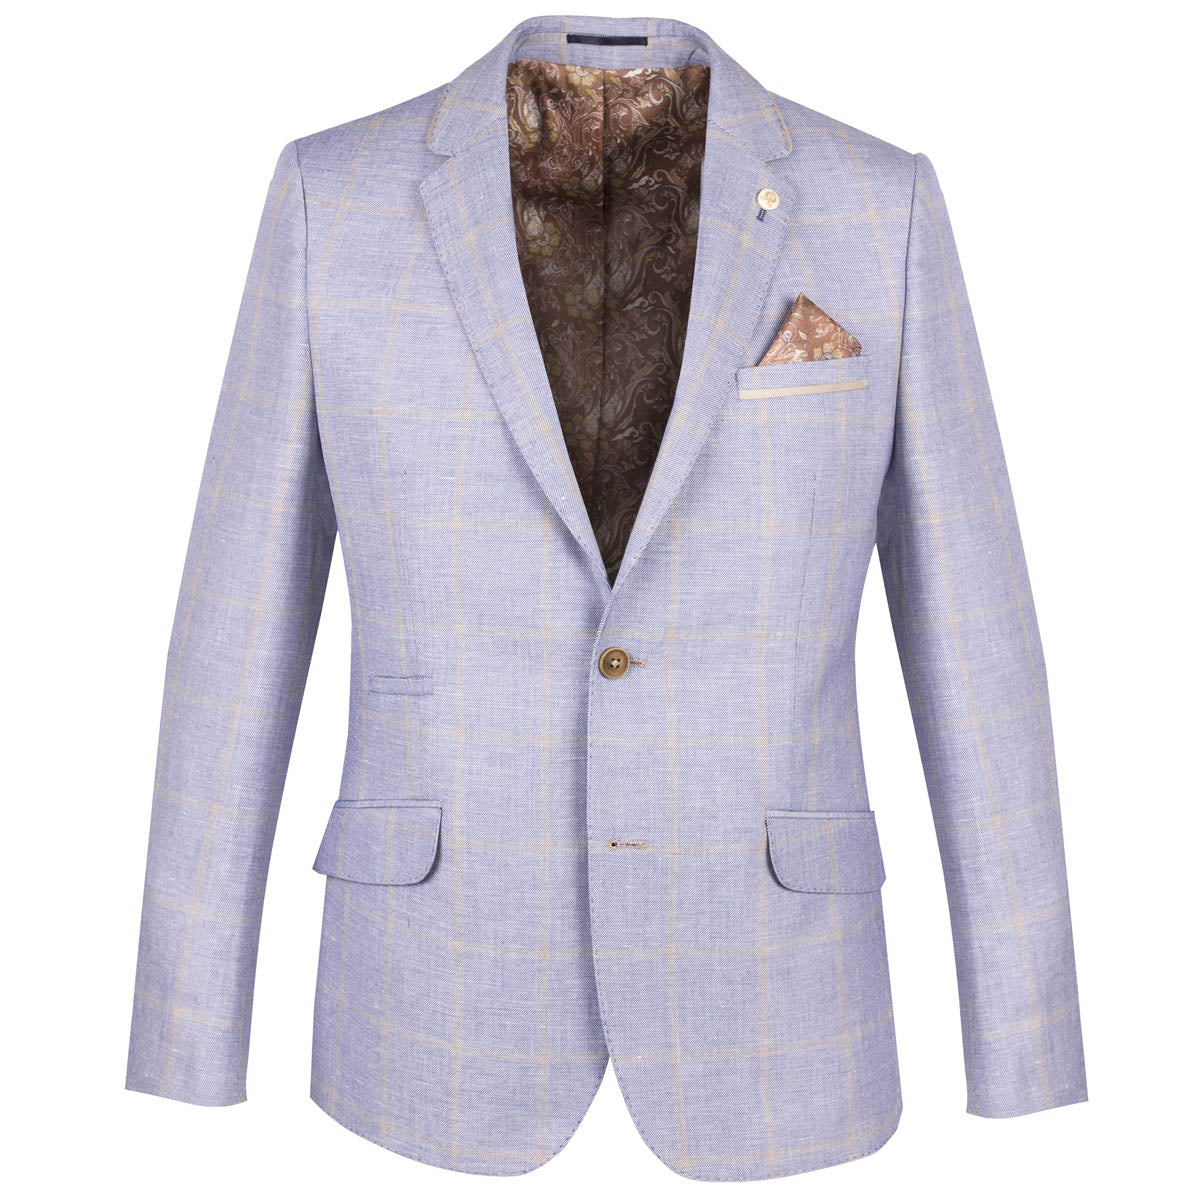 Guide London Blue Linen Blend Check Blazer Jacket JK3250